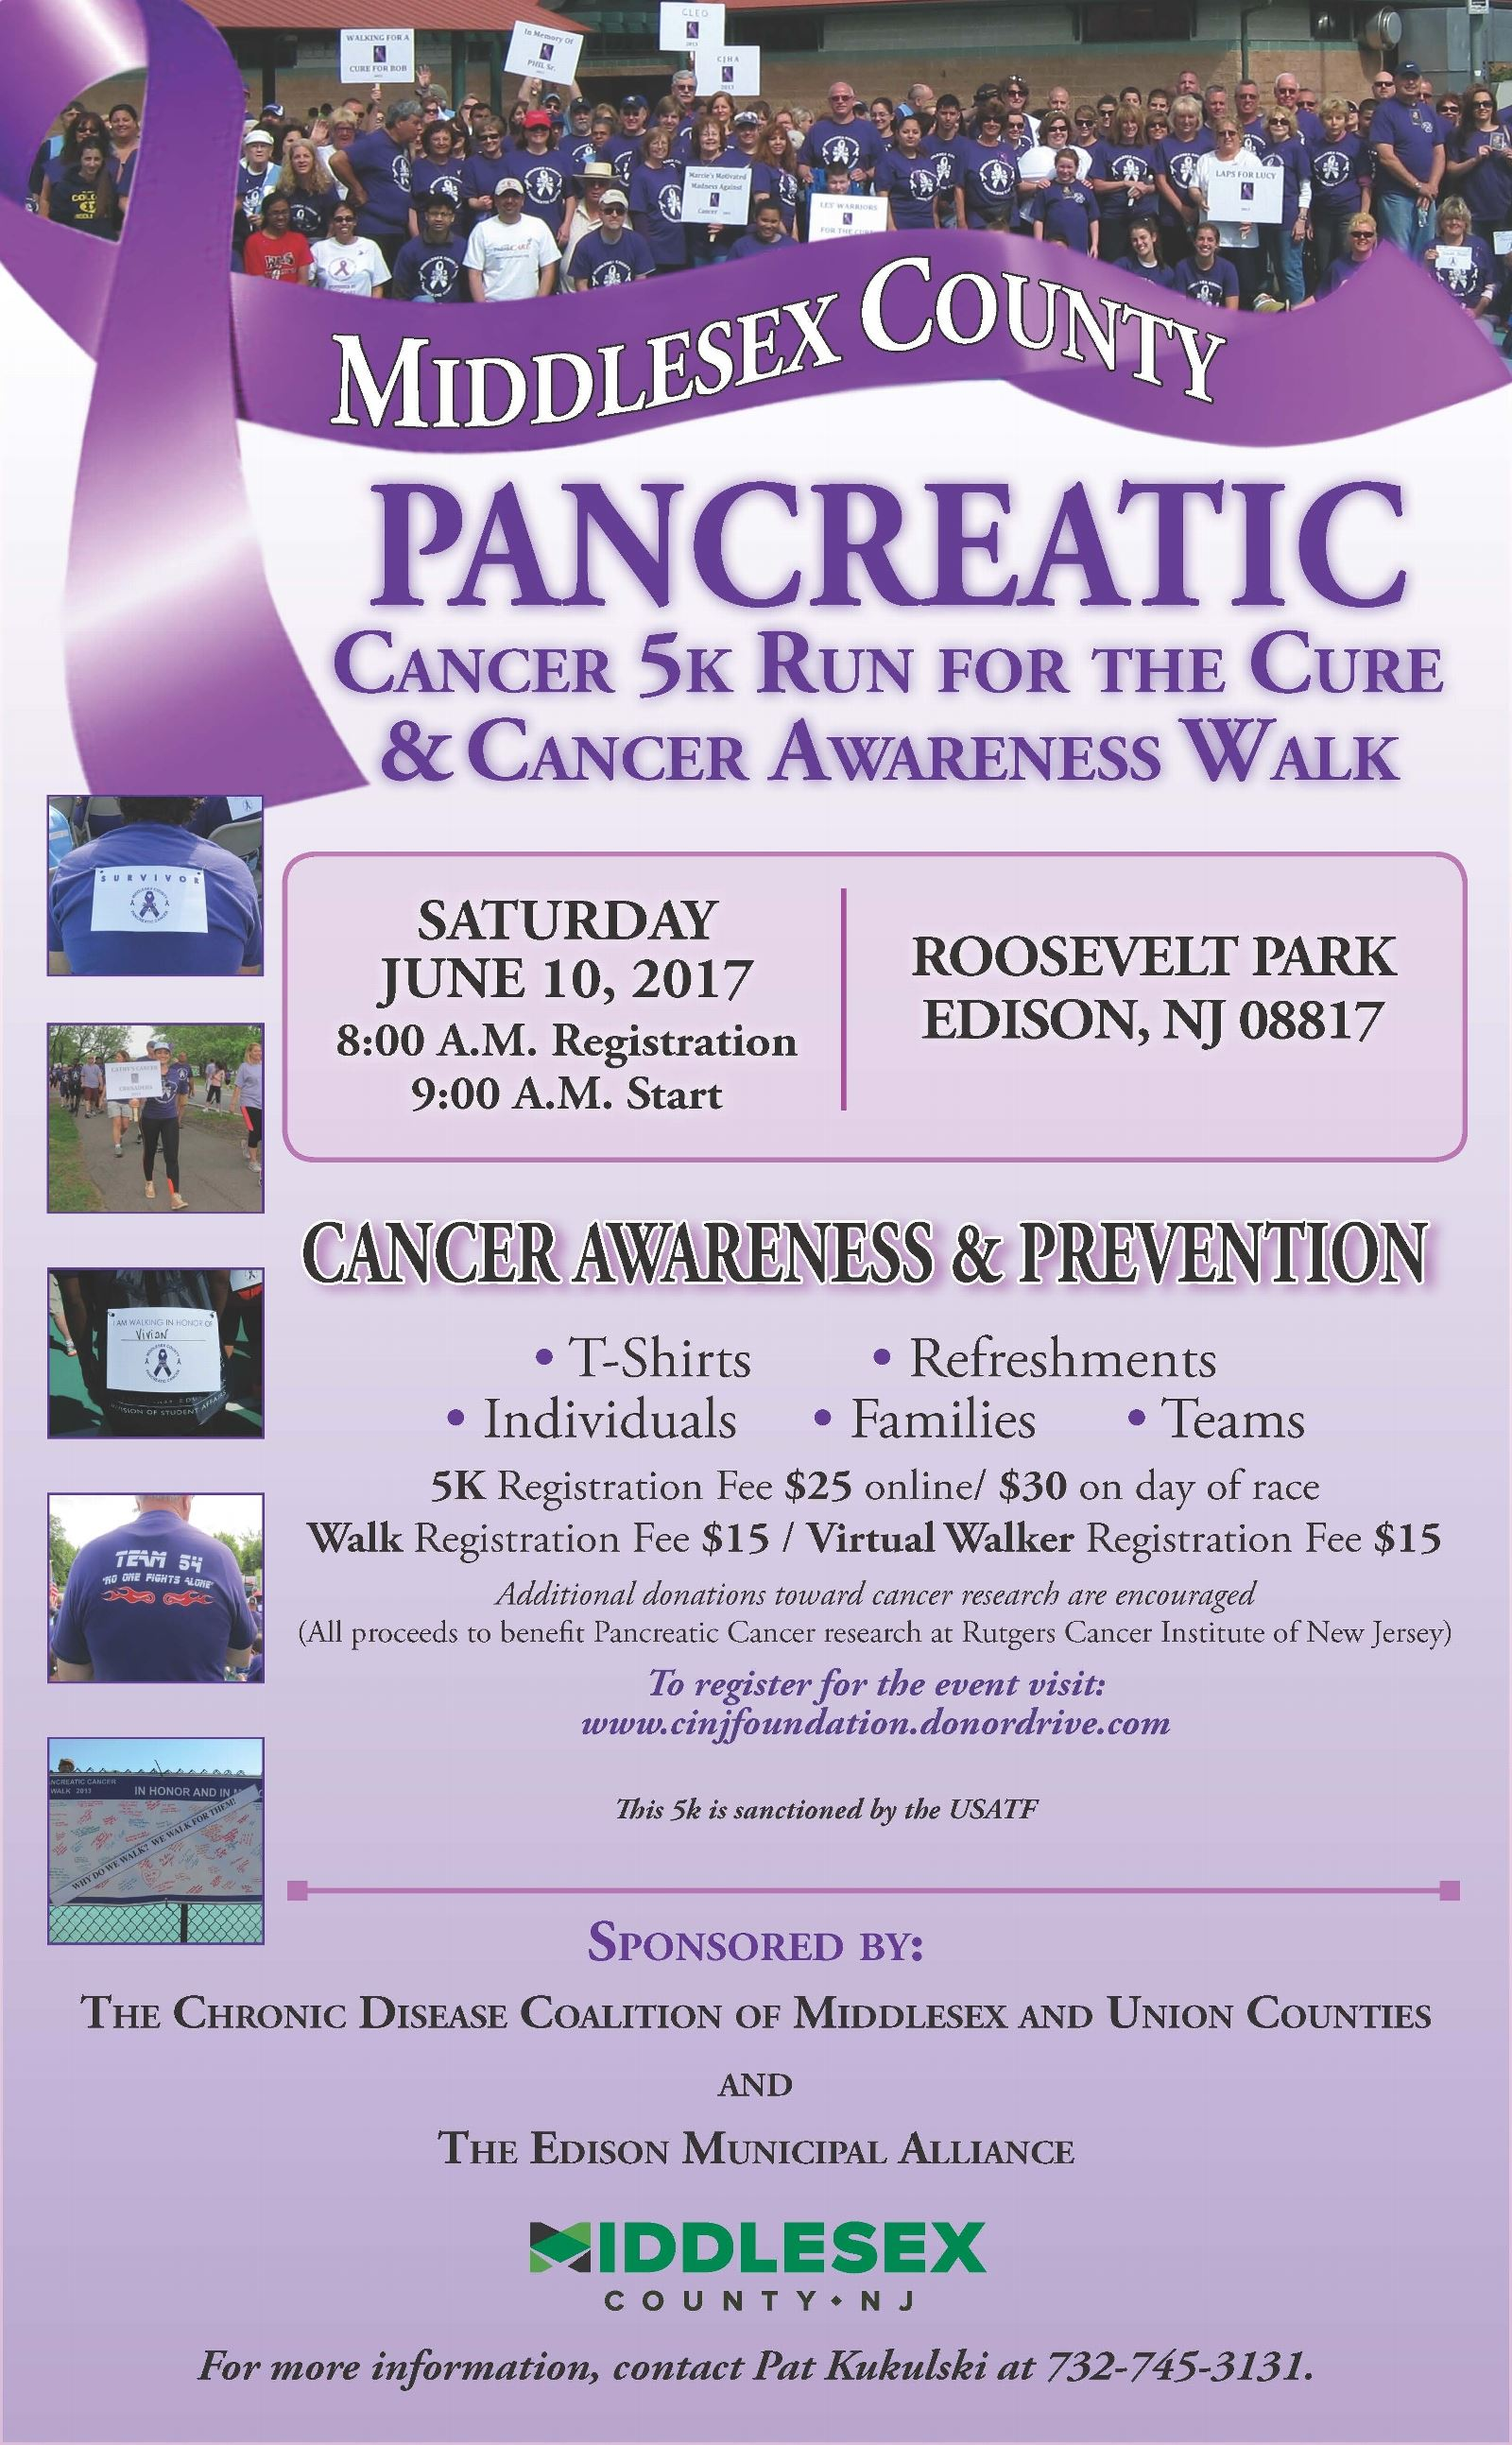 Pancreatic Cancer 5k